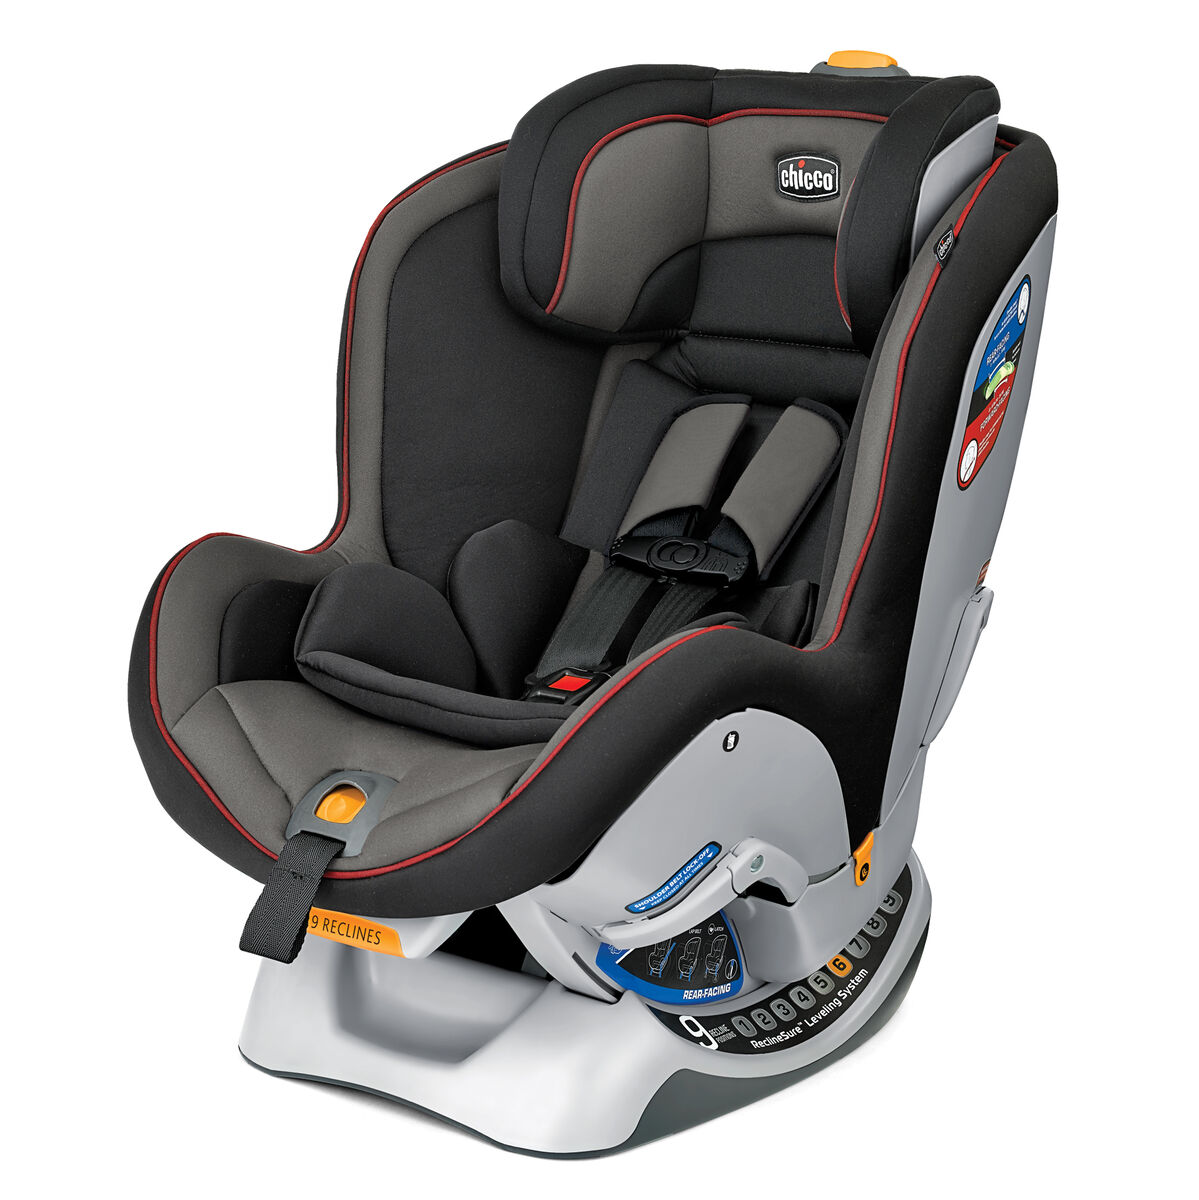 Chicco Car Seat Base Expiration Date